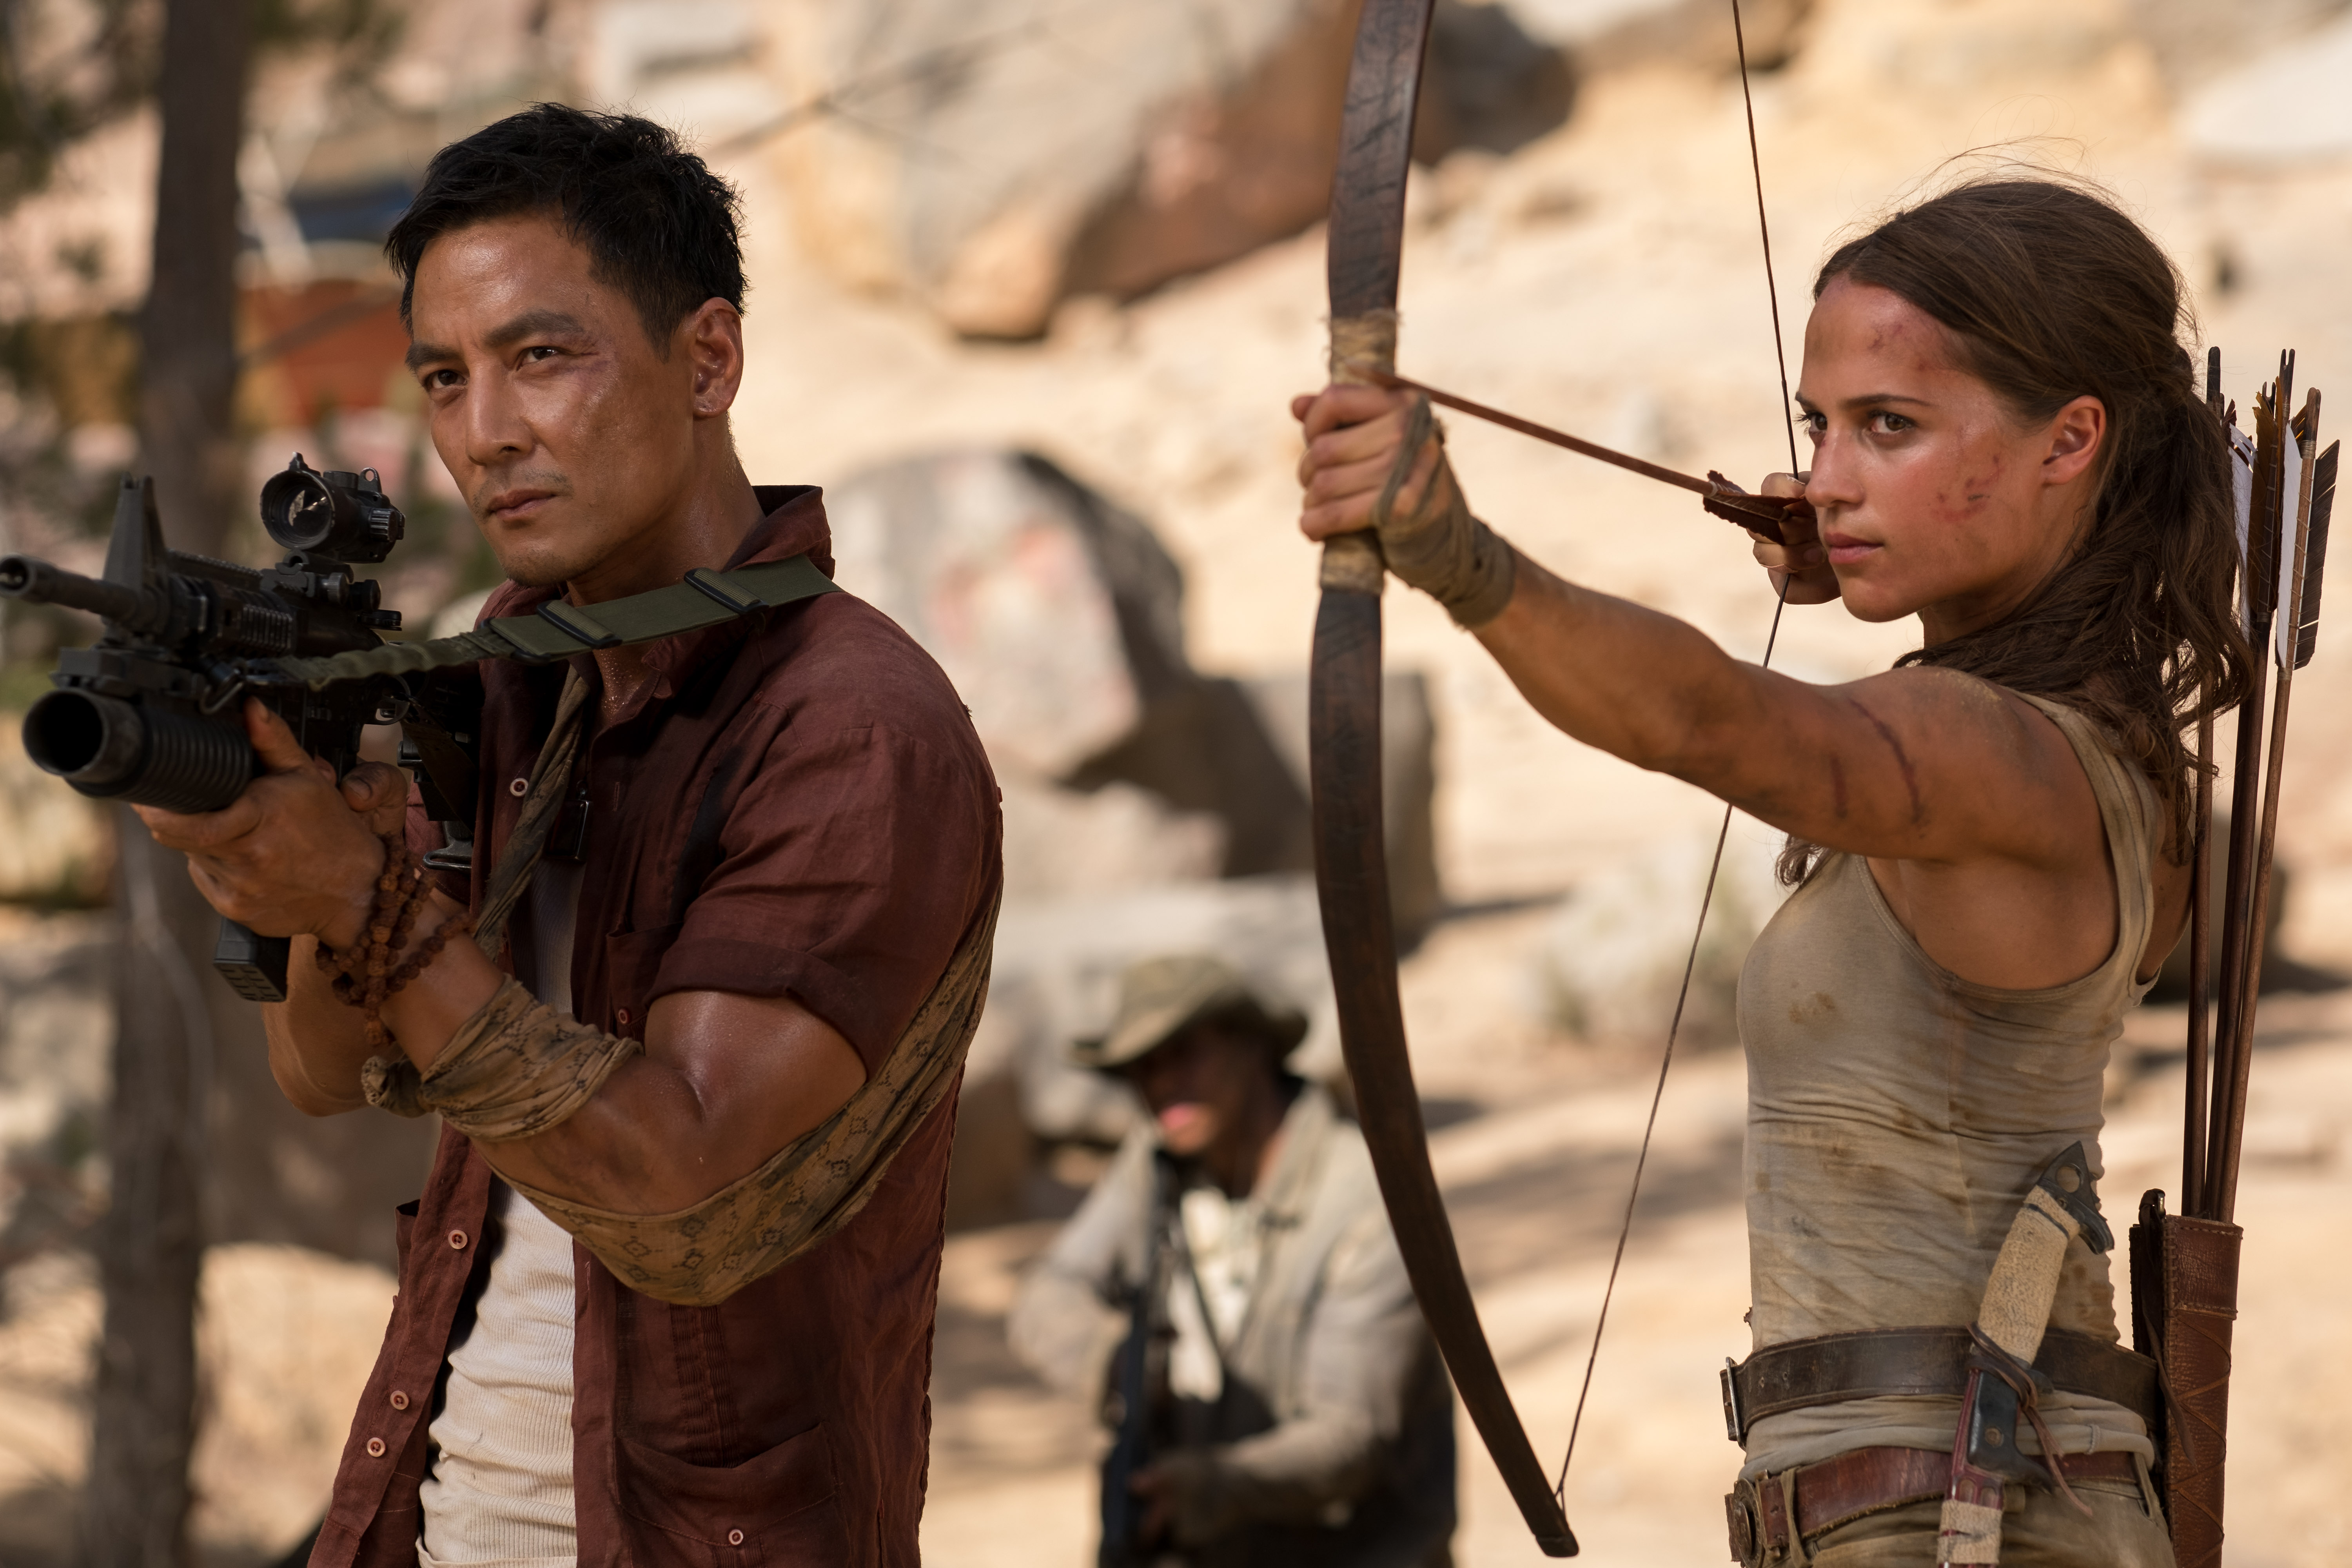 Tomb-Raider-Review-Daniel-Wu-and-Alicia-Vikander